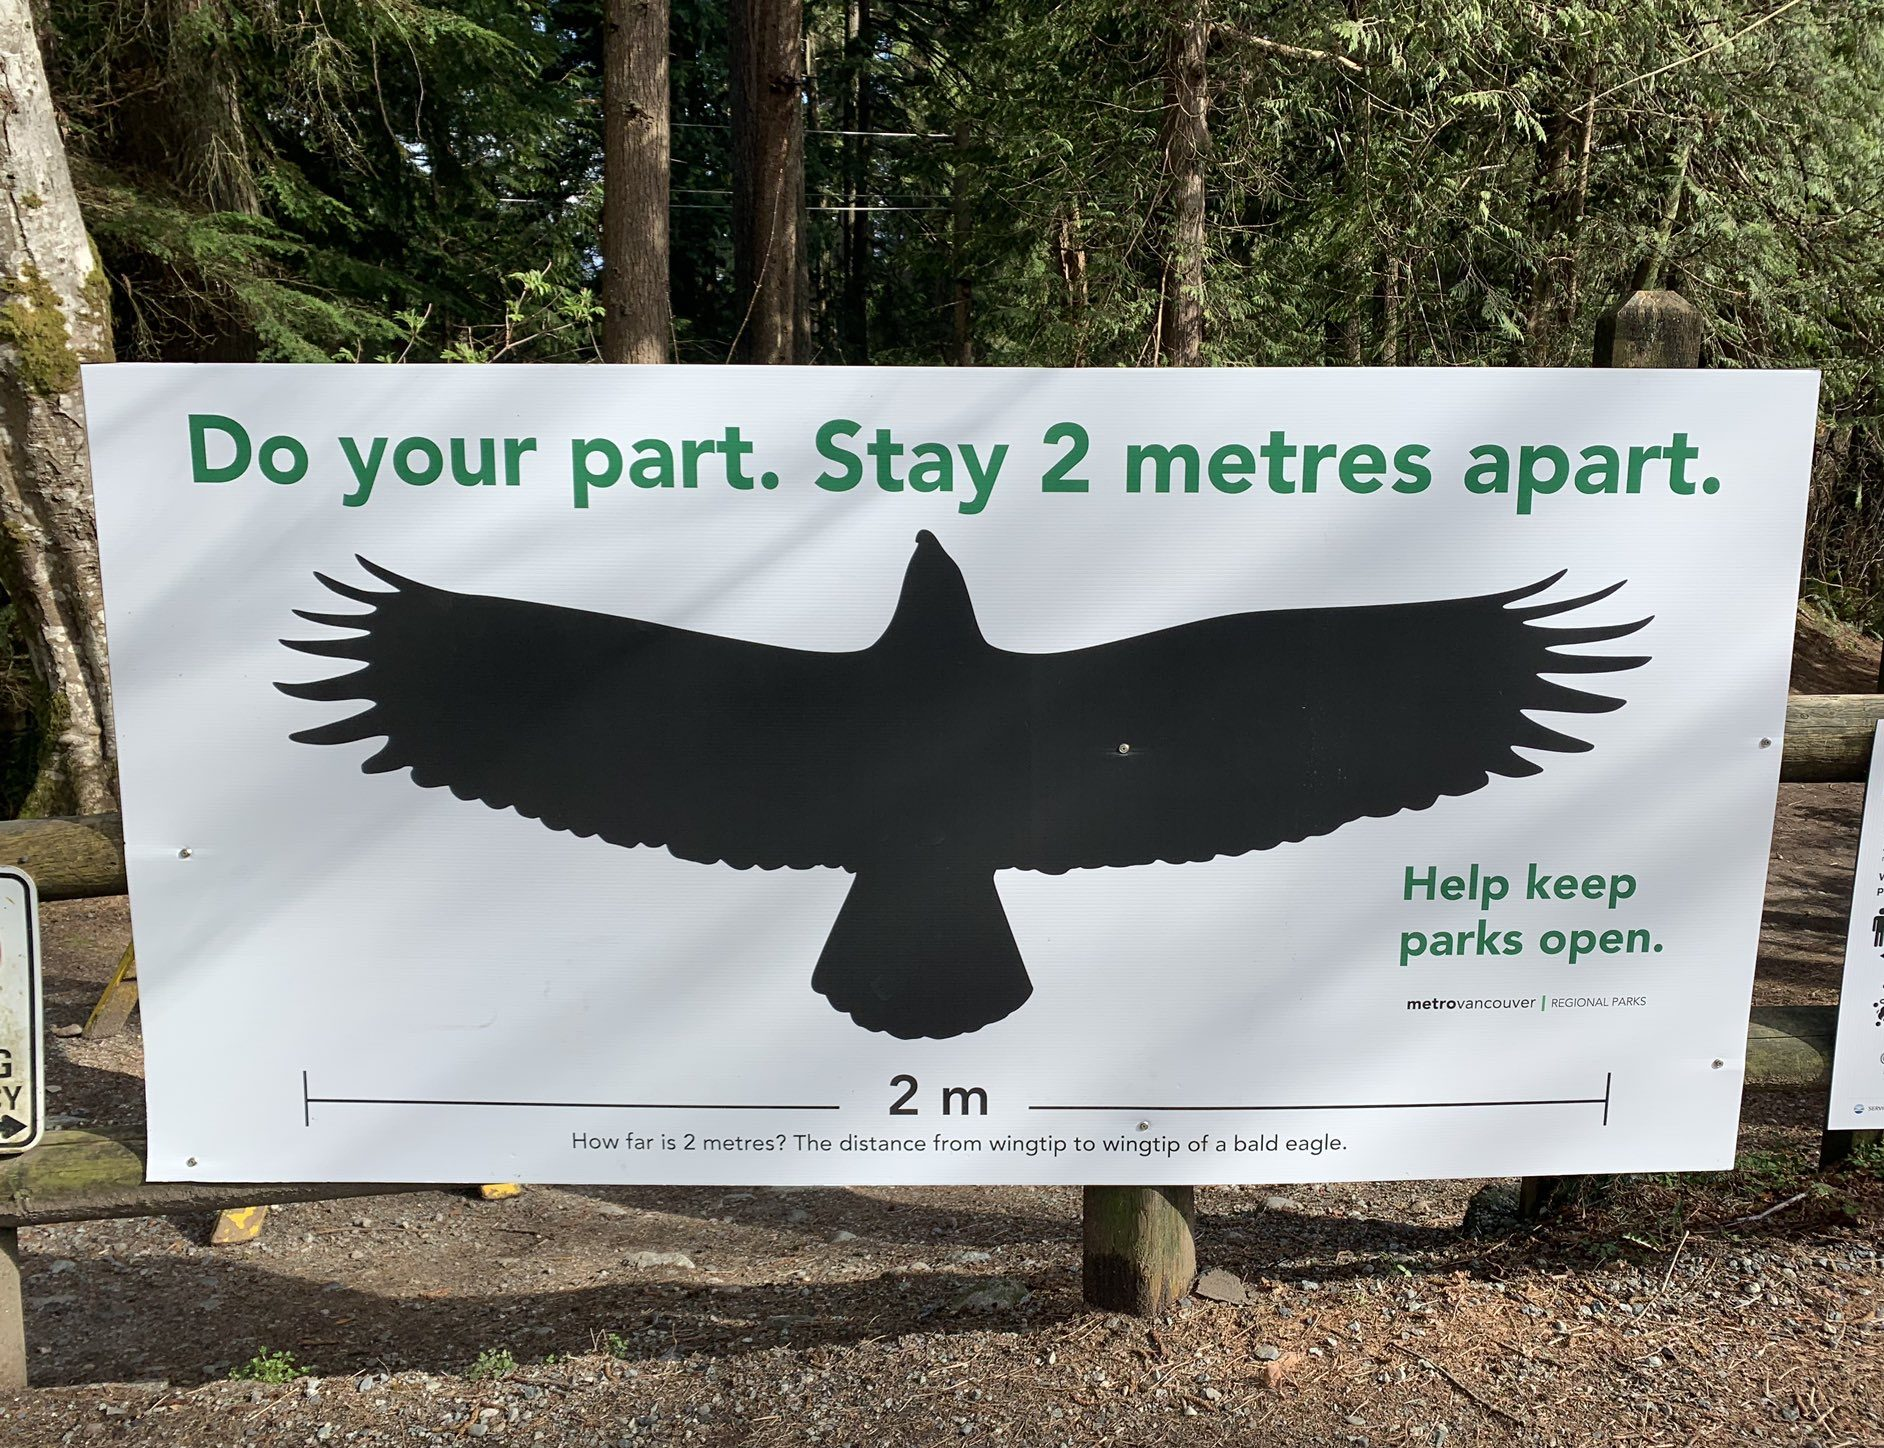 eagle image showing 2 meters apart distance